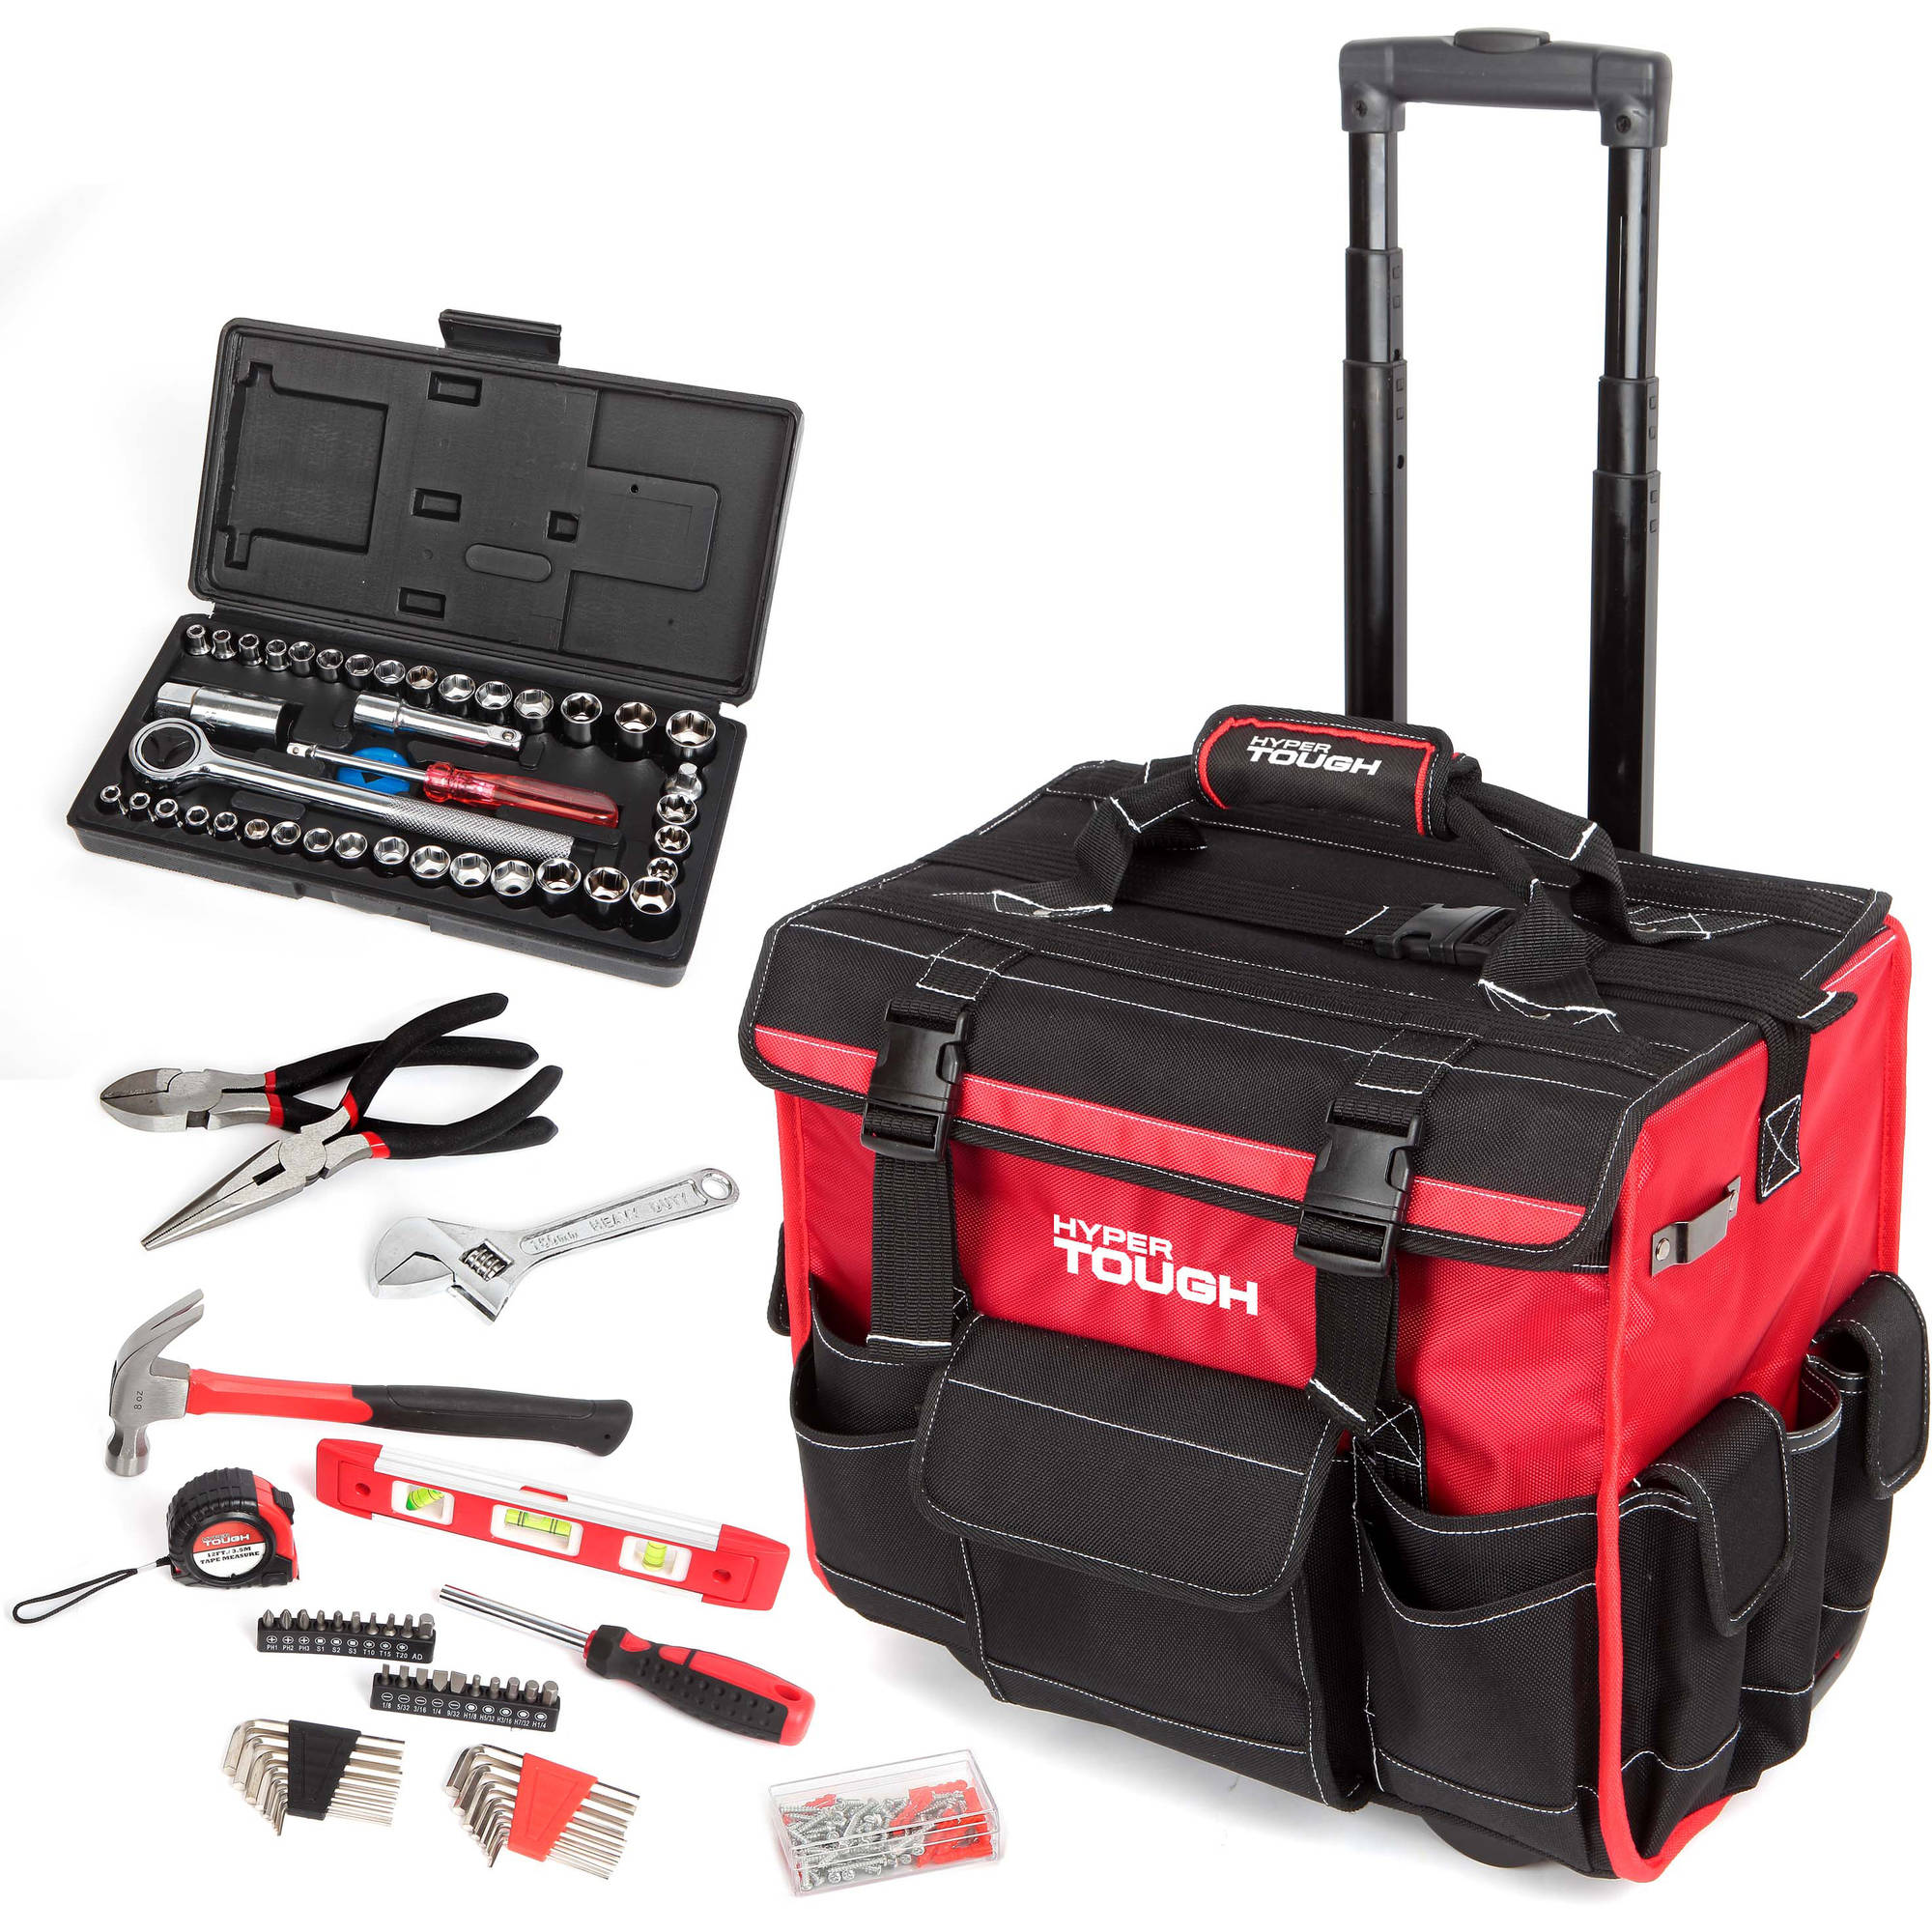 HyperTough 174-Piece Tool Set with Trolley Bag